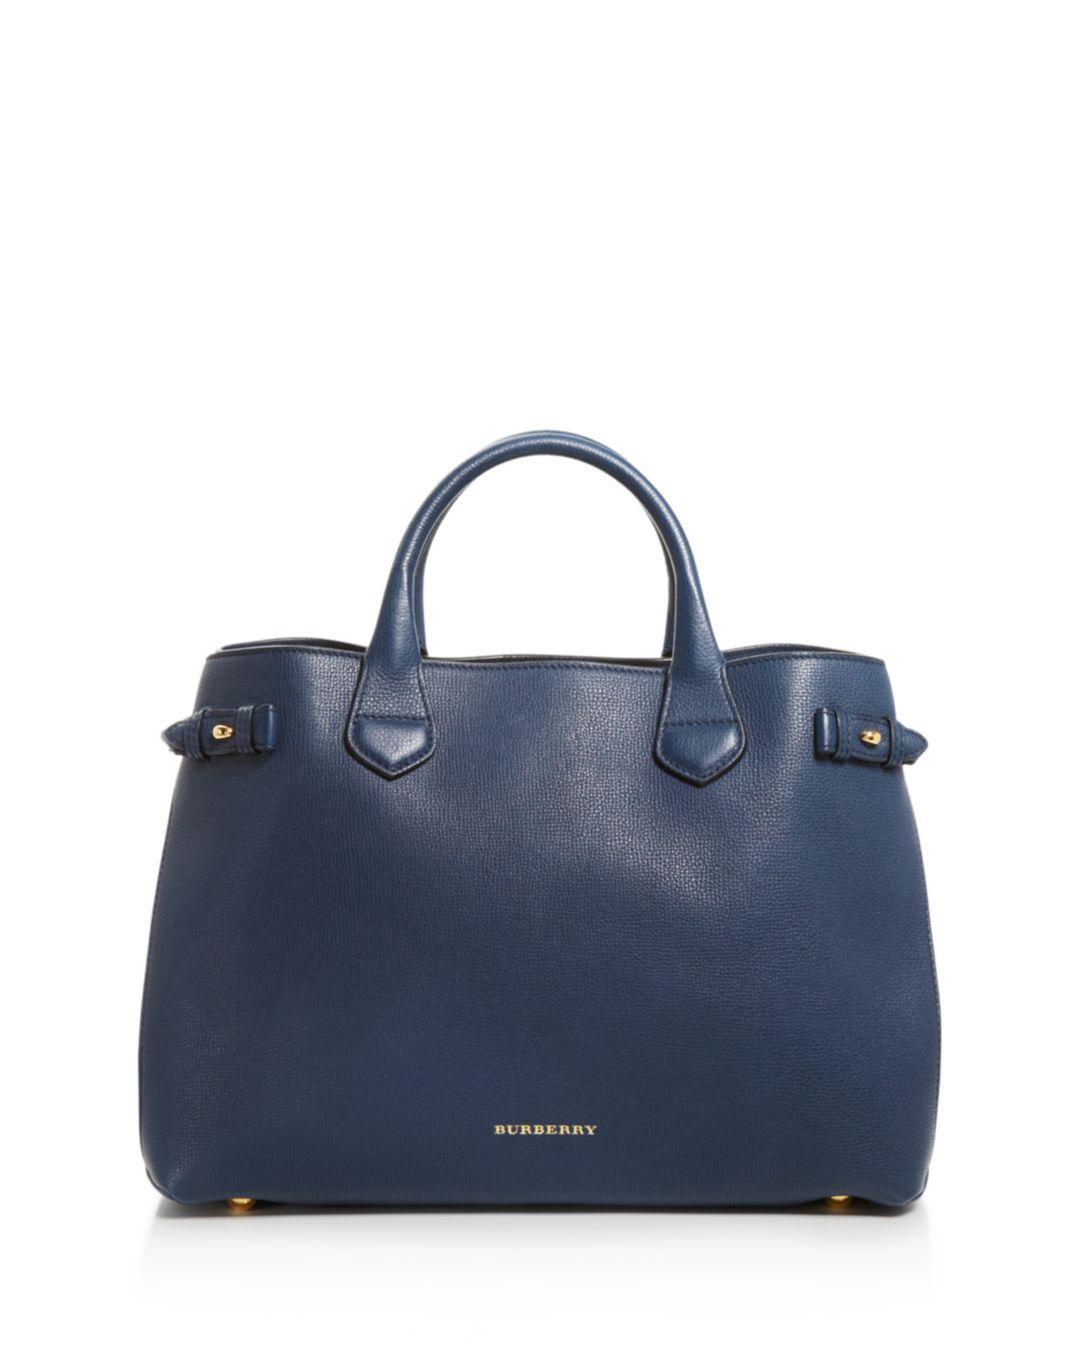 8ec007a4a1e5 Burberry - Blue Banner House Check Medium Leather Tote - Lyst. View  fullscreen